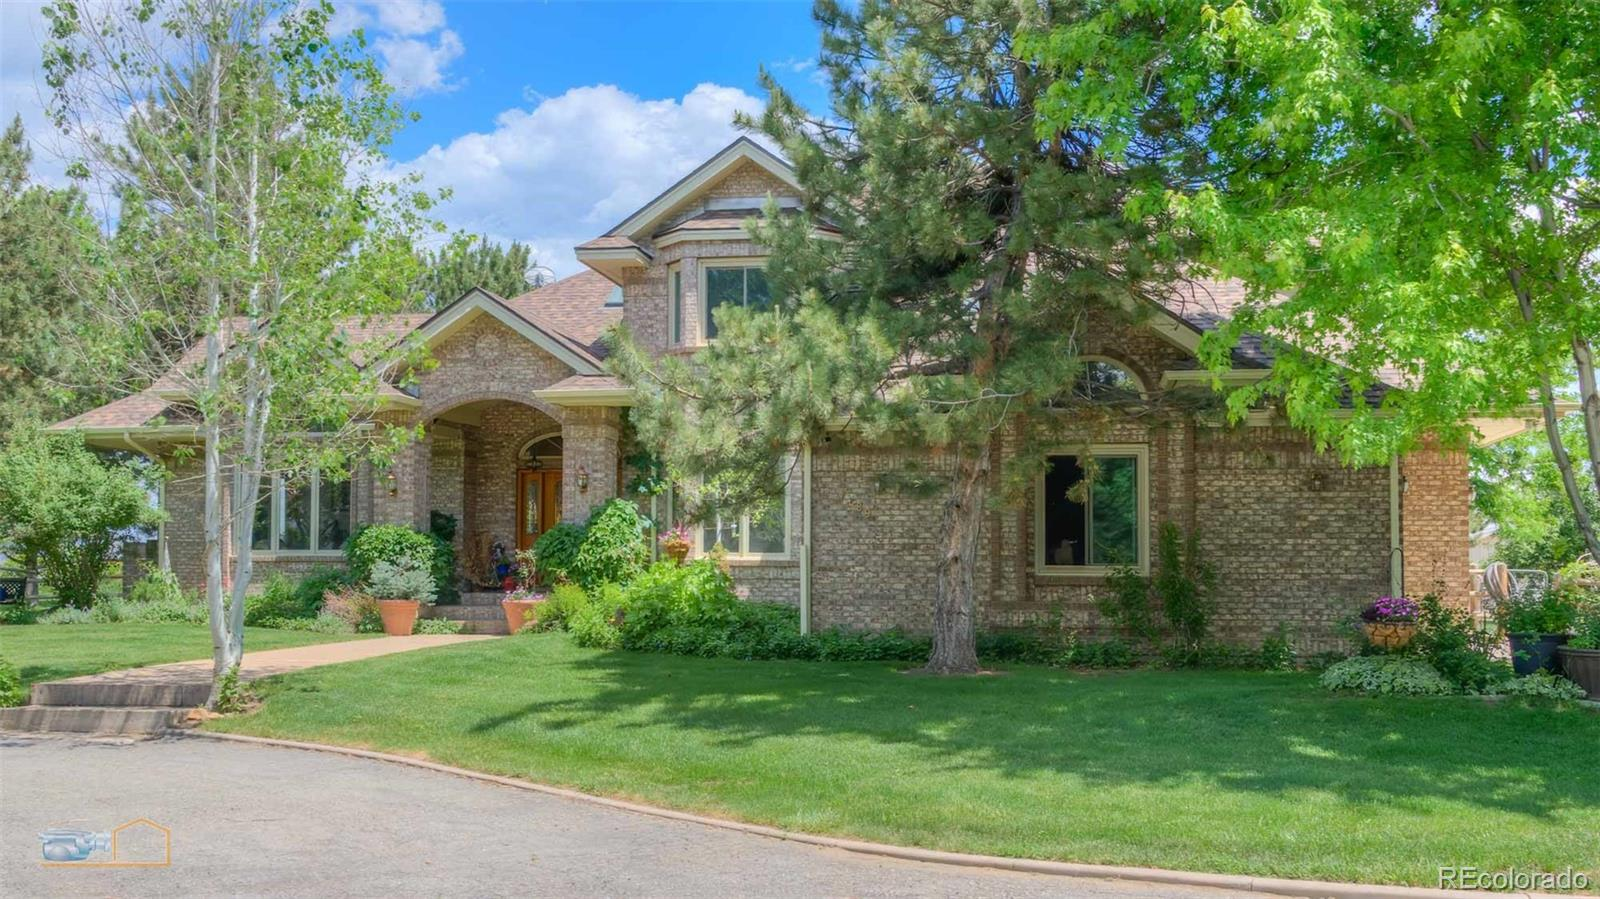 7289 Coyote Trail Property Photo - Longmont, CO real estate listing